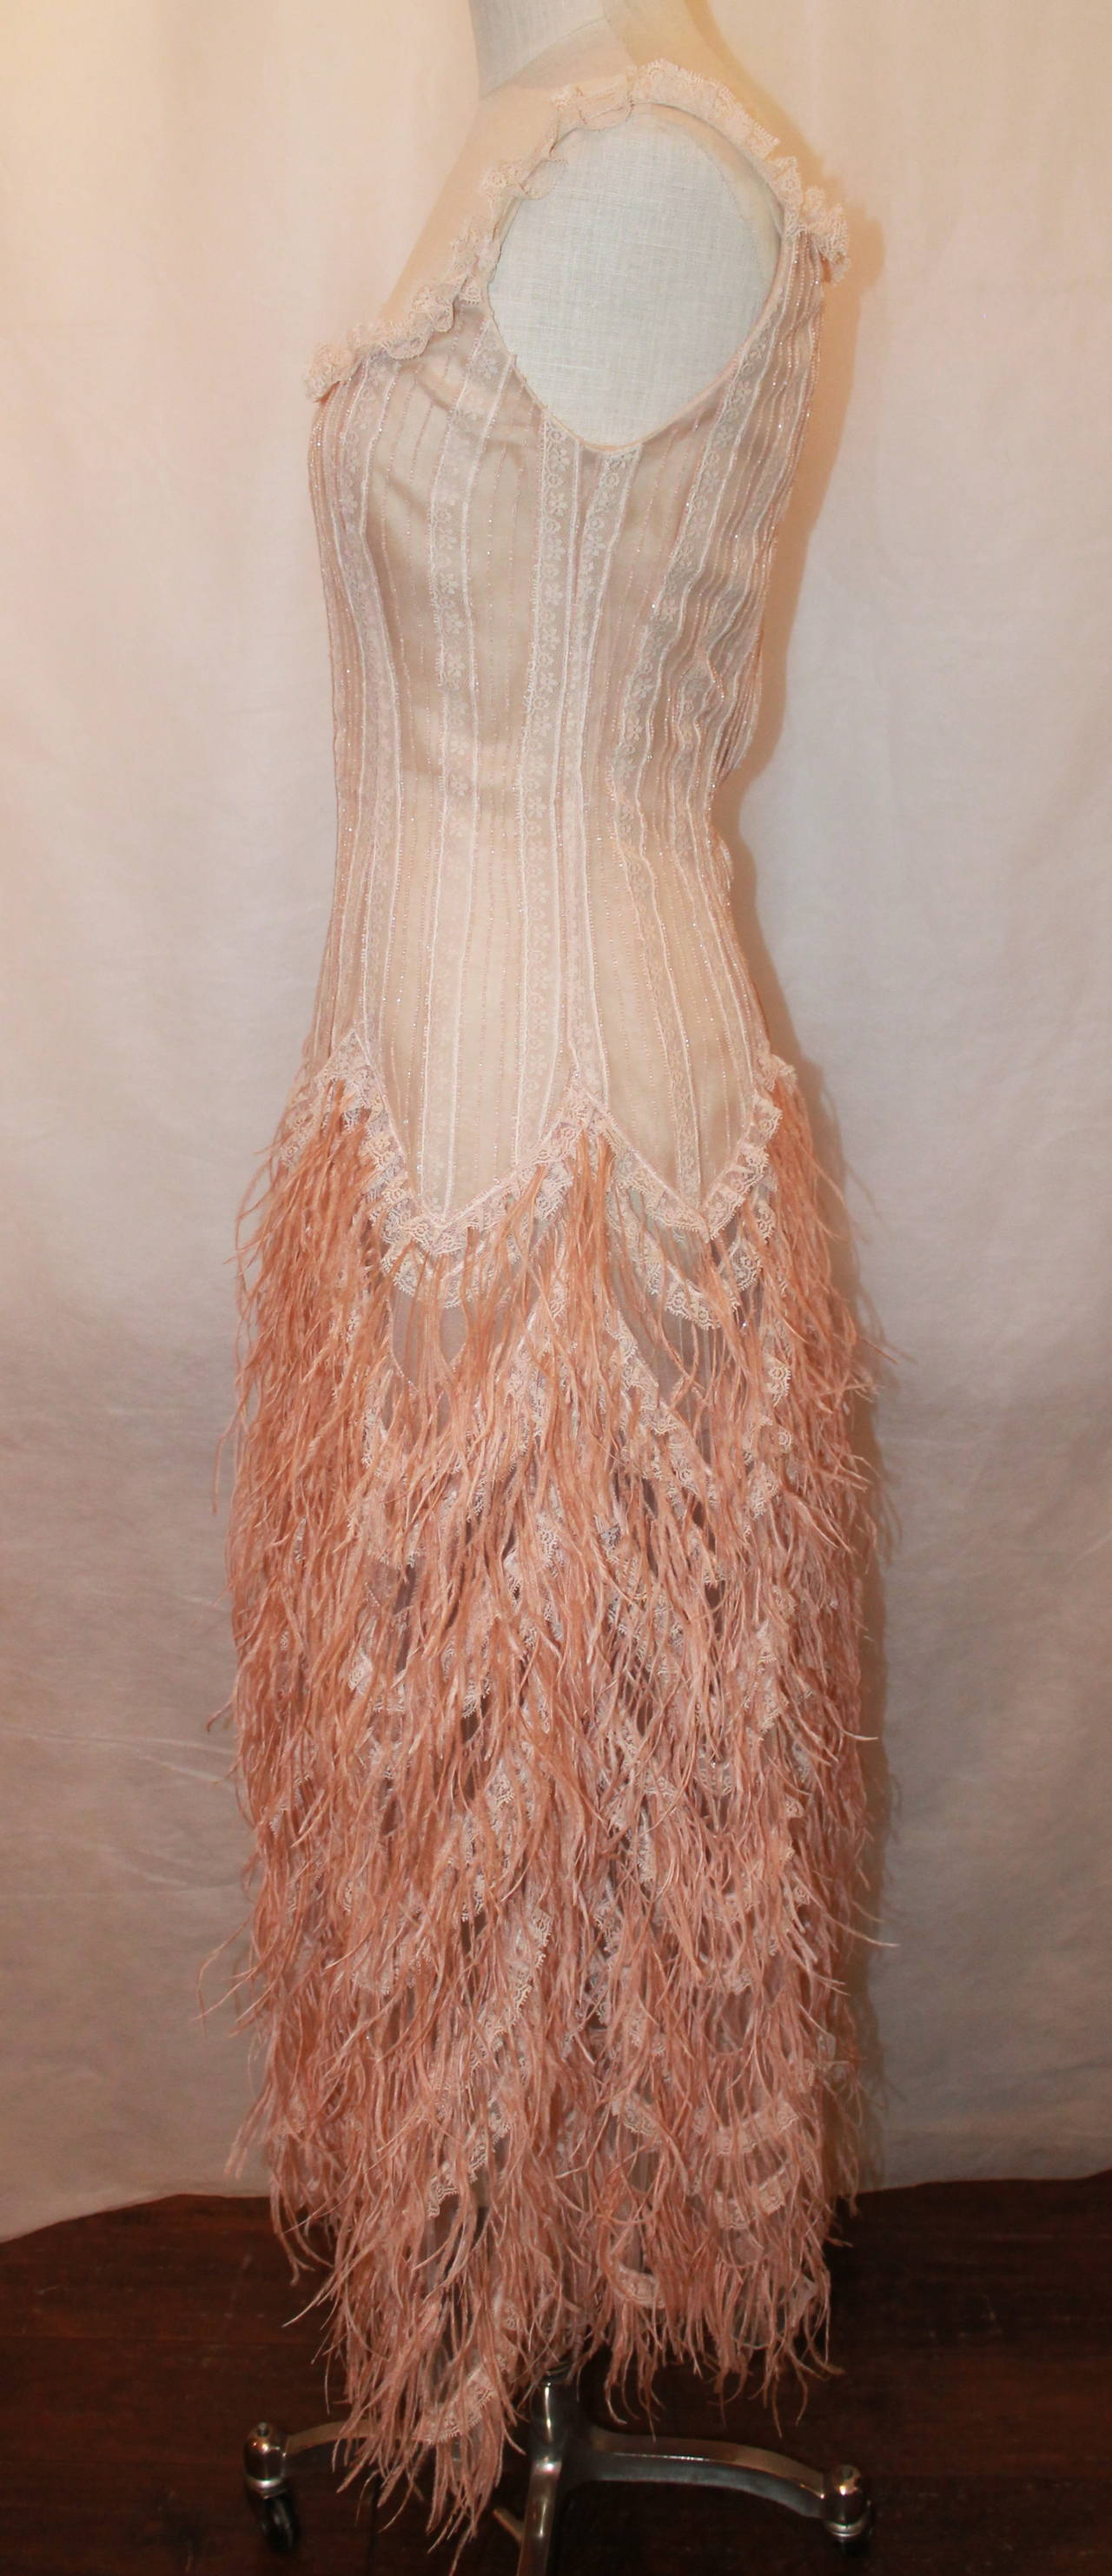 Oscar de la Renta Blush Lace Beaded Gown with Ostrich Feathers & Shawl - M In Good Condition For Sale In Palm Beach, FL